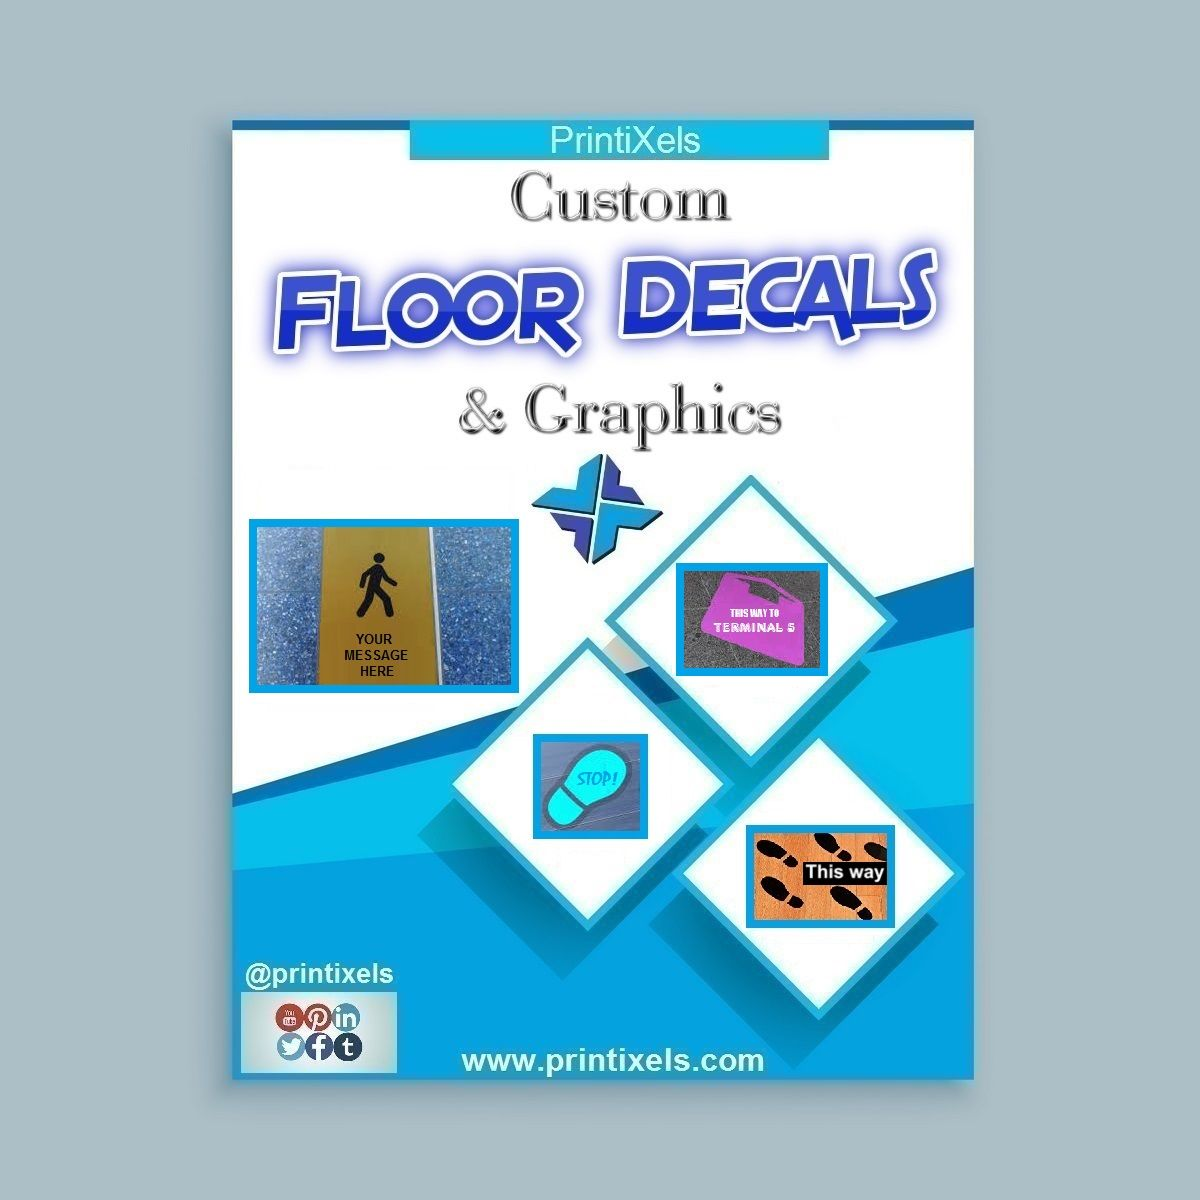 Car sticker maker philippines - Custom Floor Decals Graphics